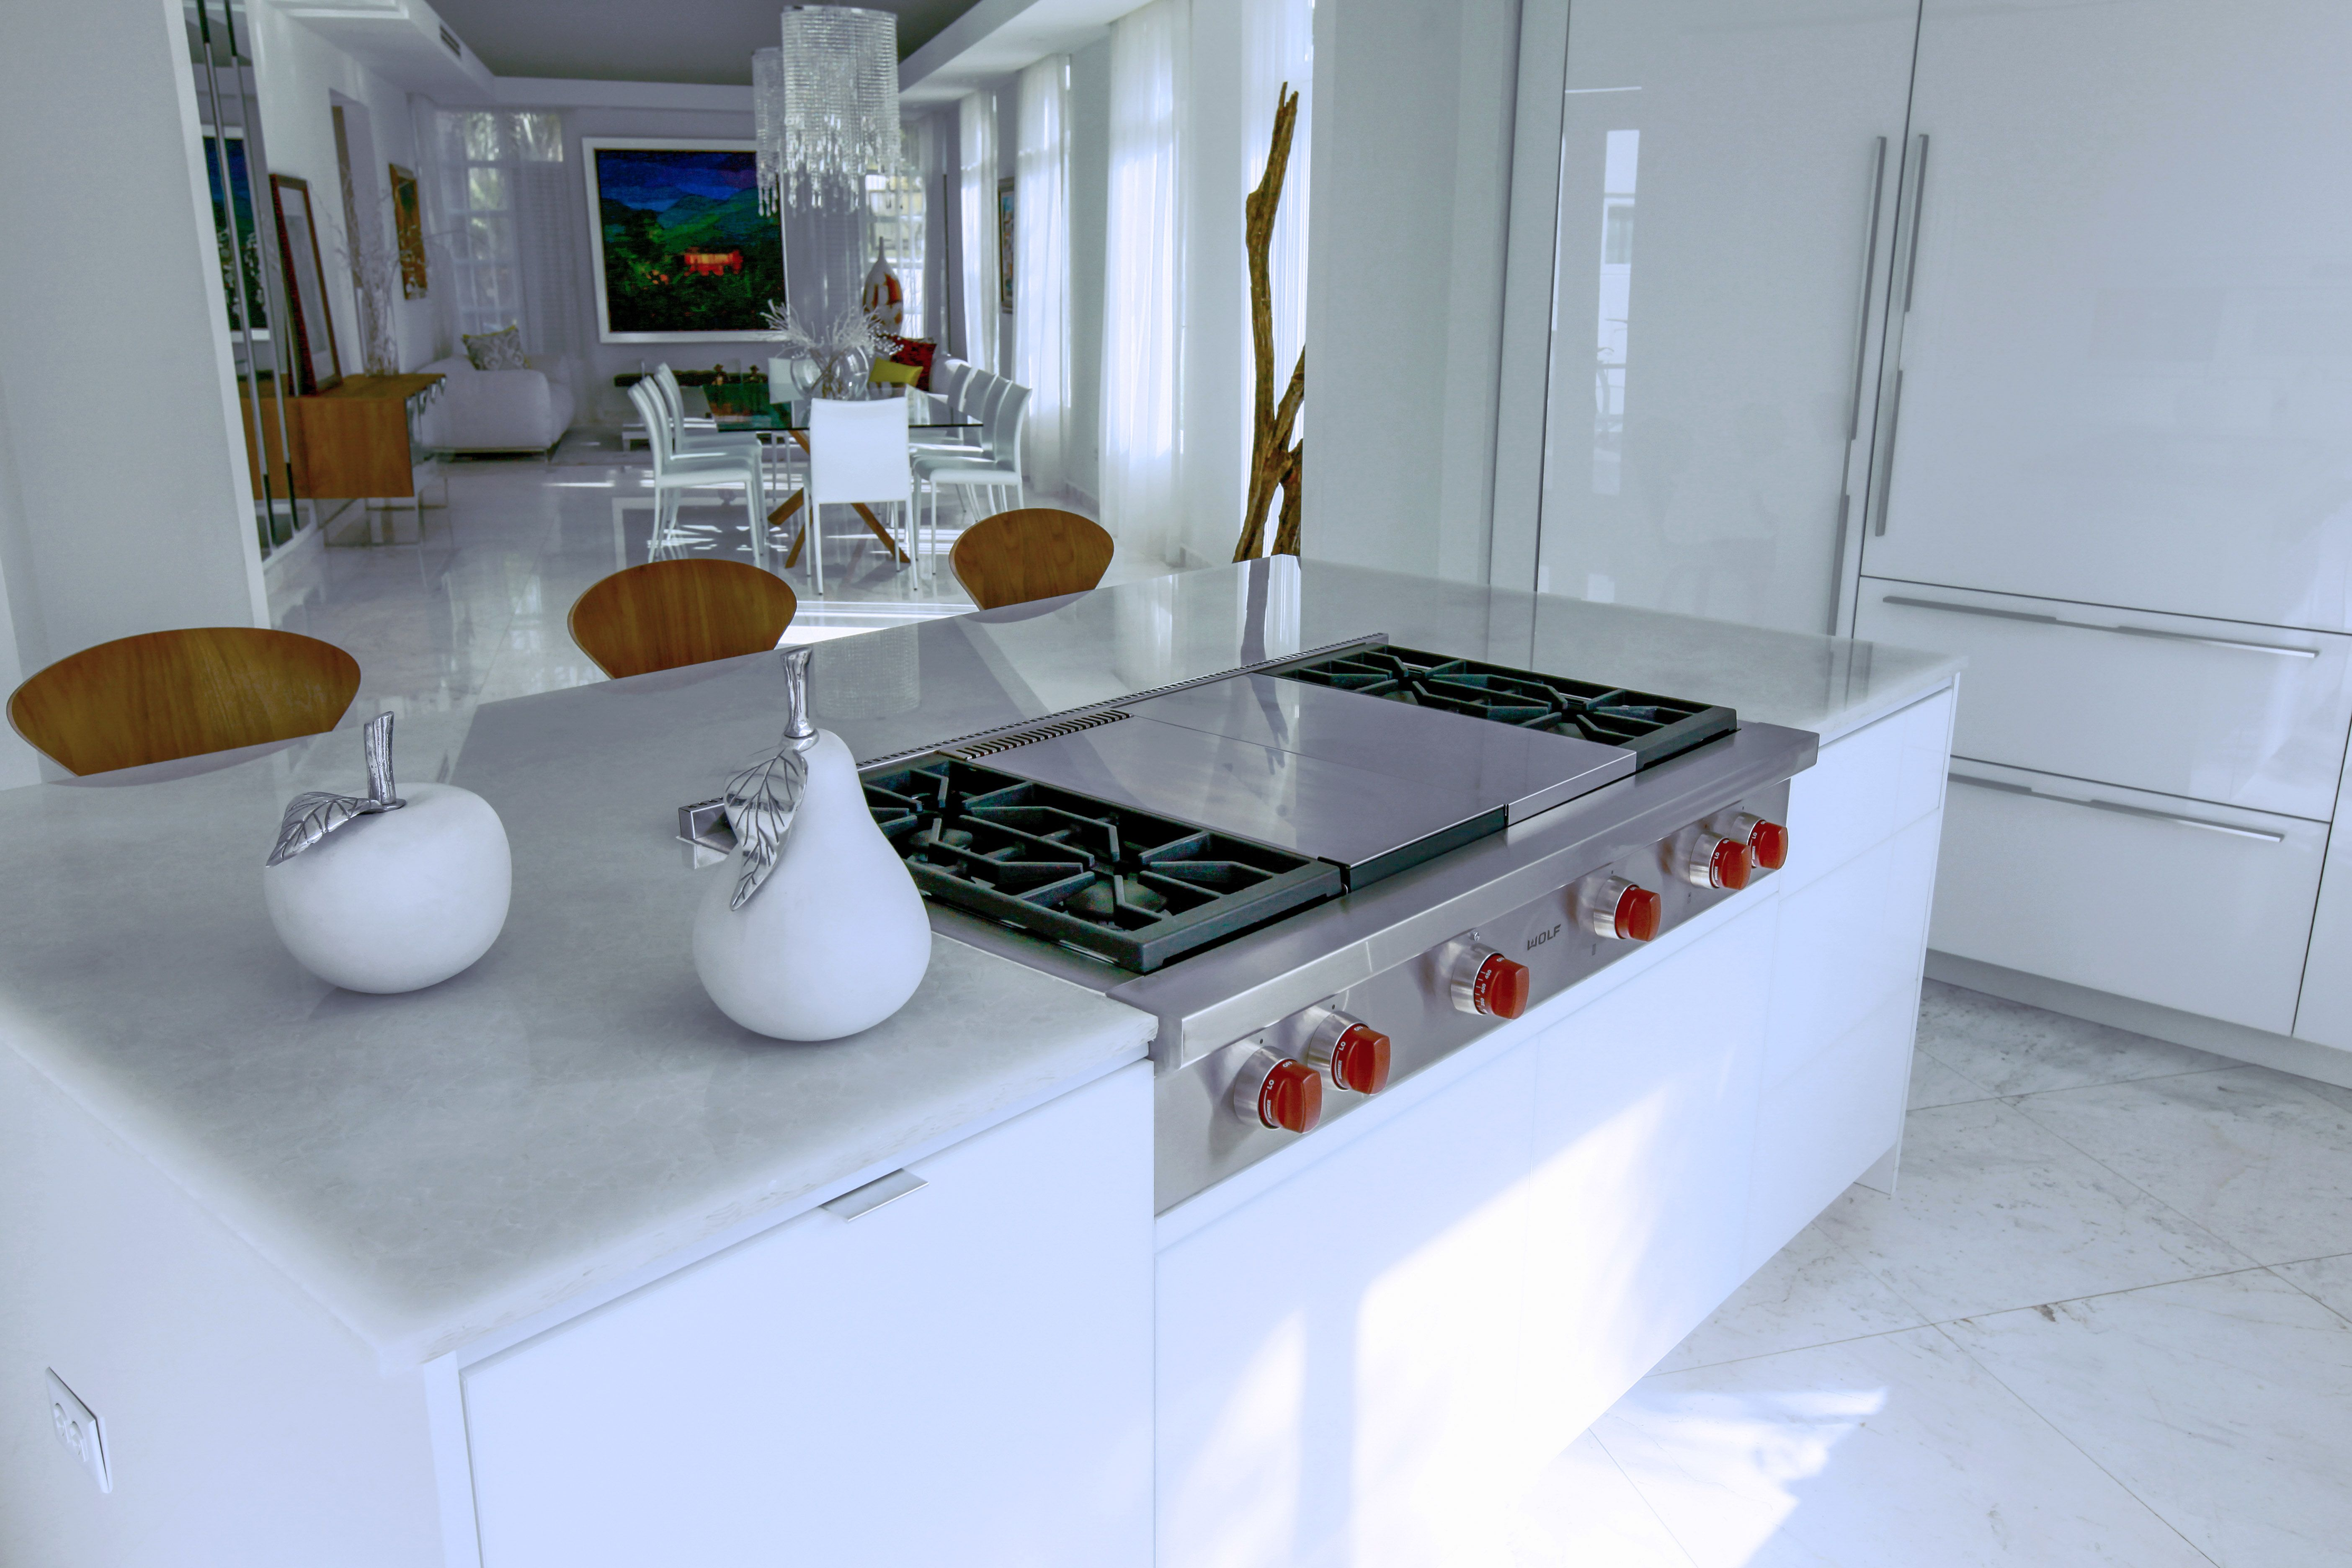 Want a modern kitchen that shines? Get RAUVISIO crystal glass ...